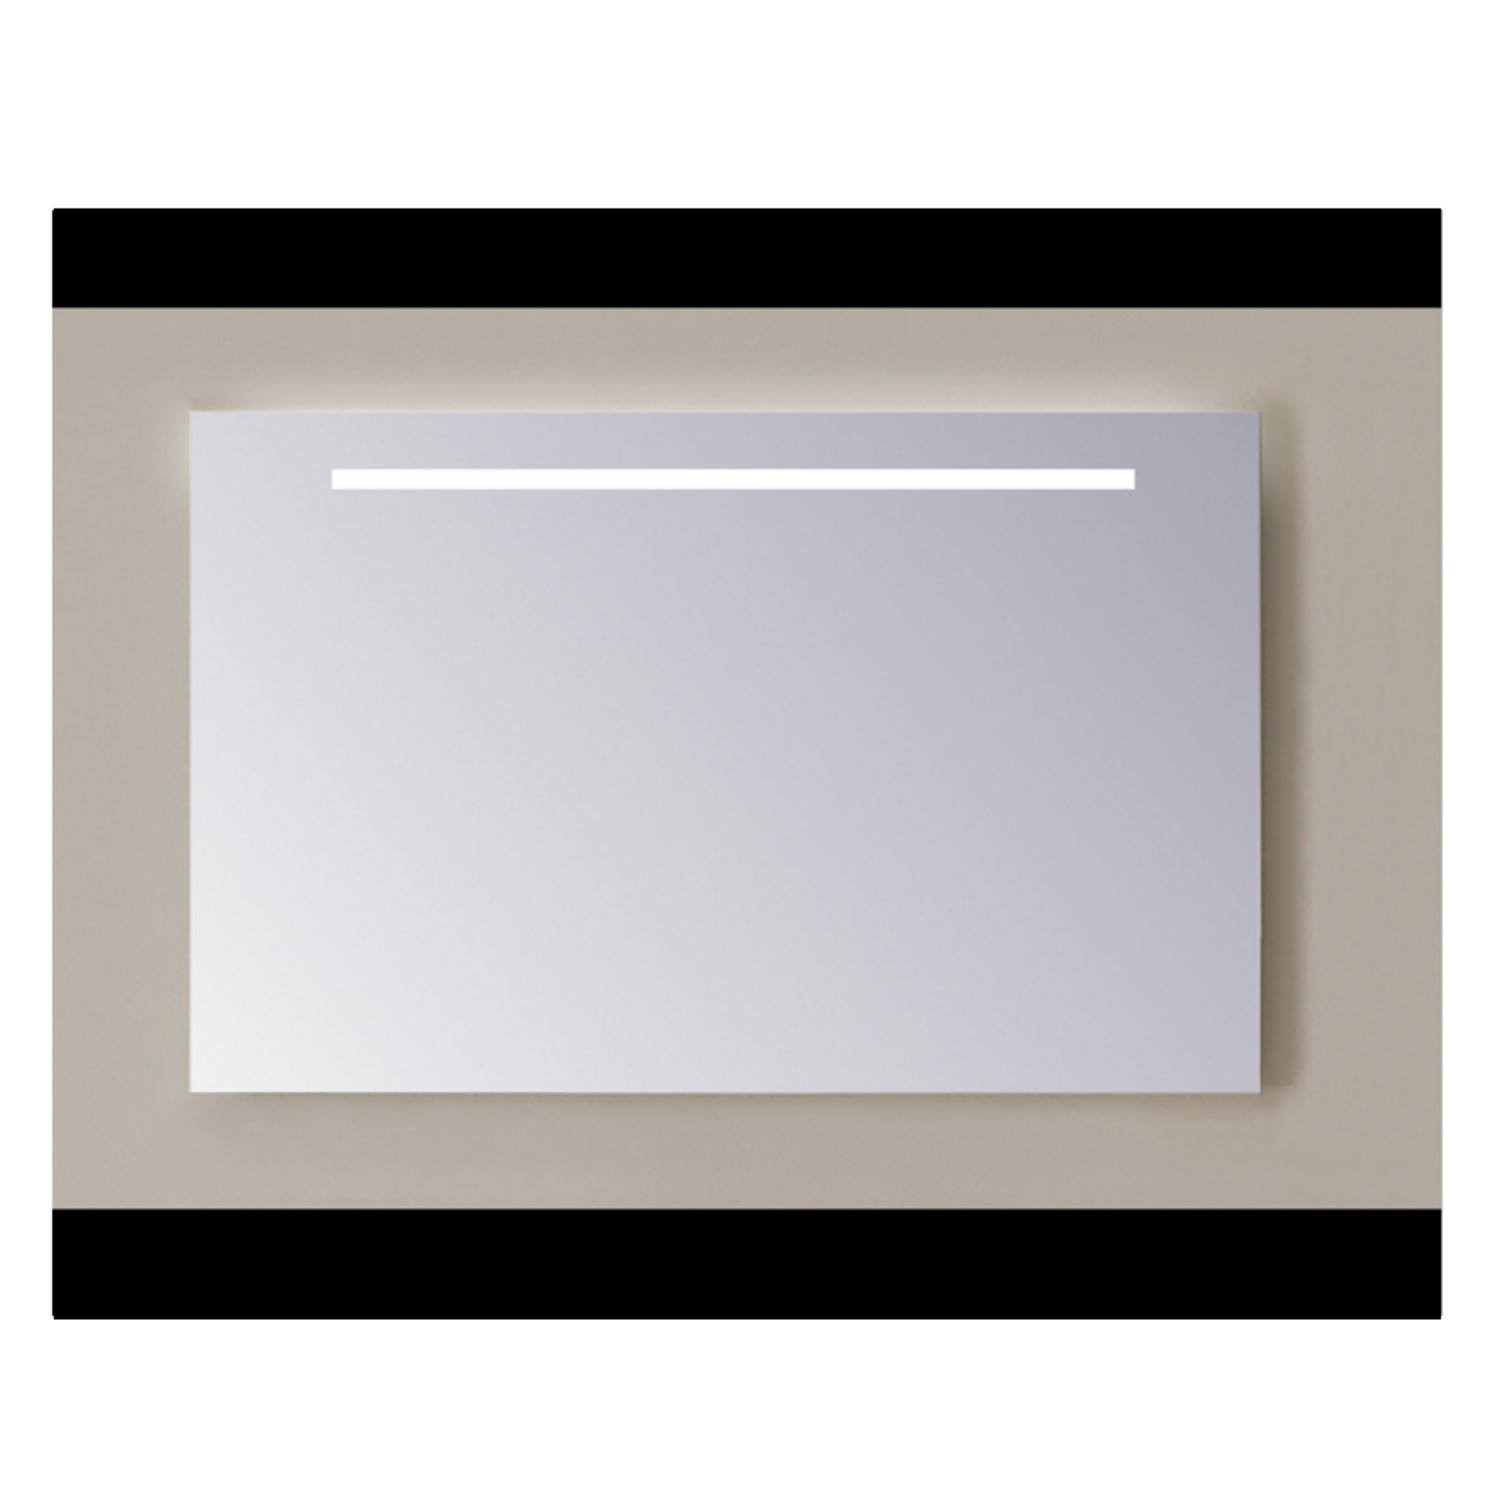 Spiegel Sanicare Q-mirrors Zonder Omlijsting 60 x 85 cm Cold White LED PP Geslepen